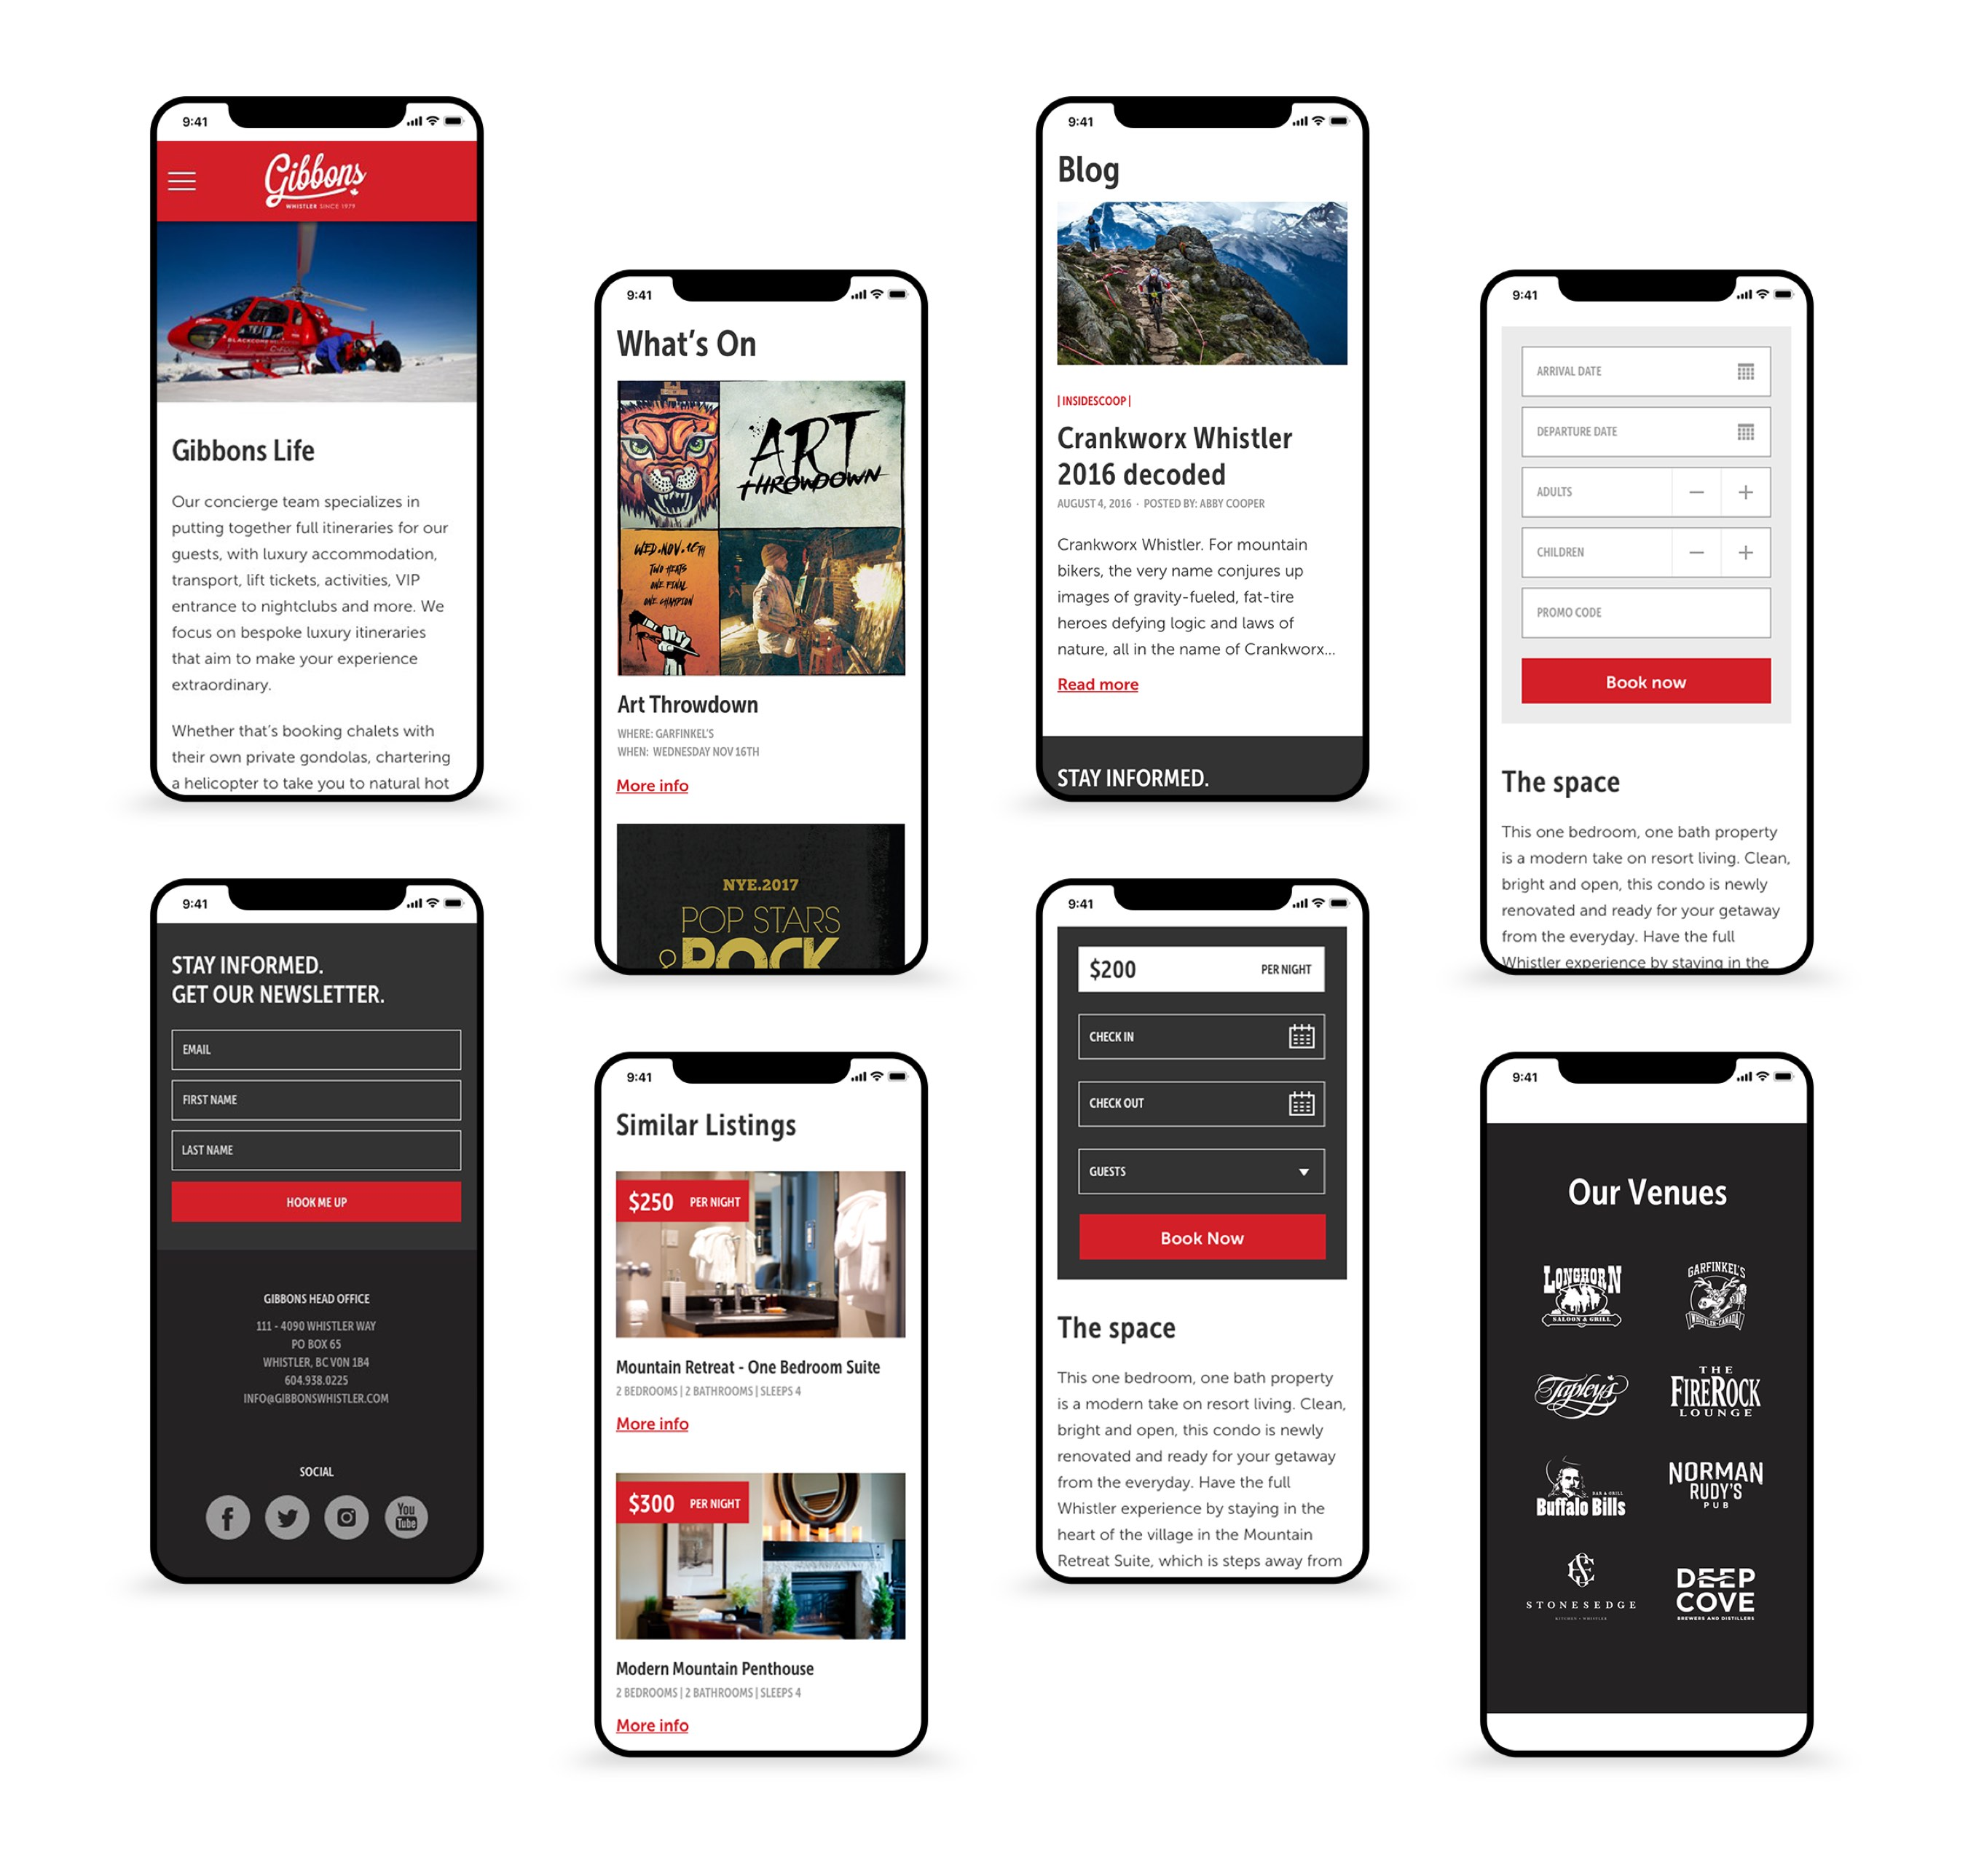 Gibbons mobile screens